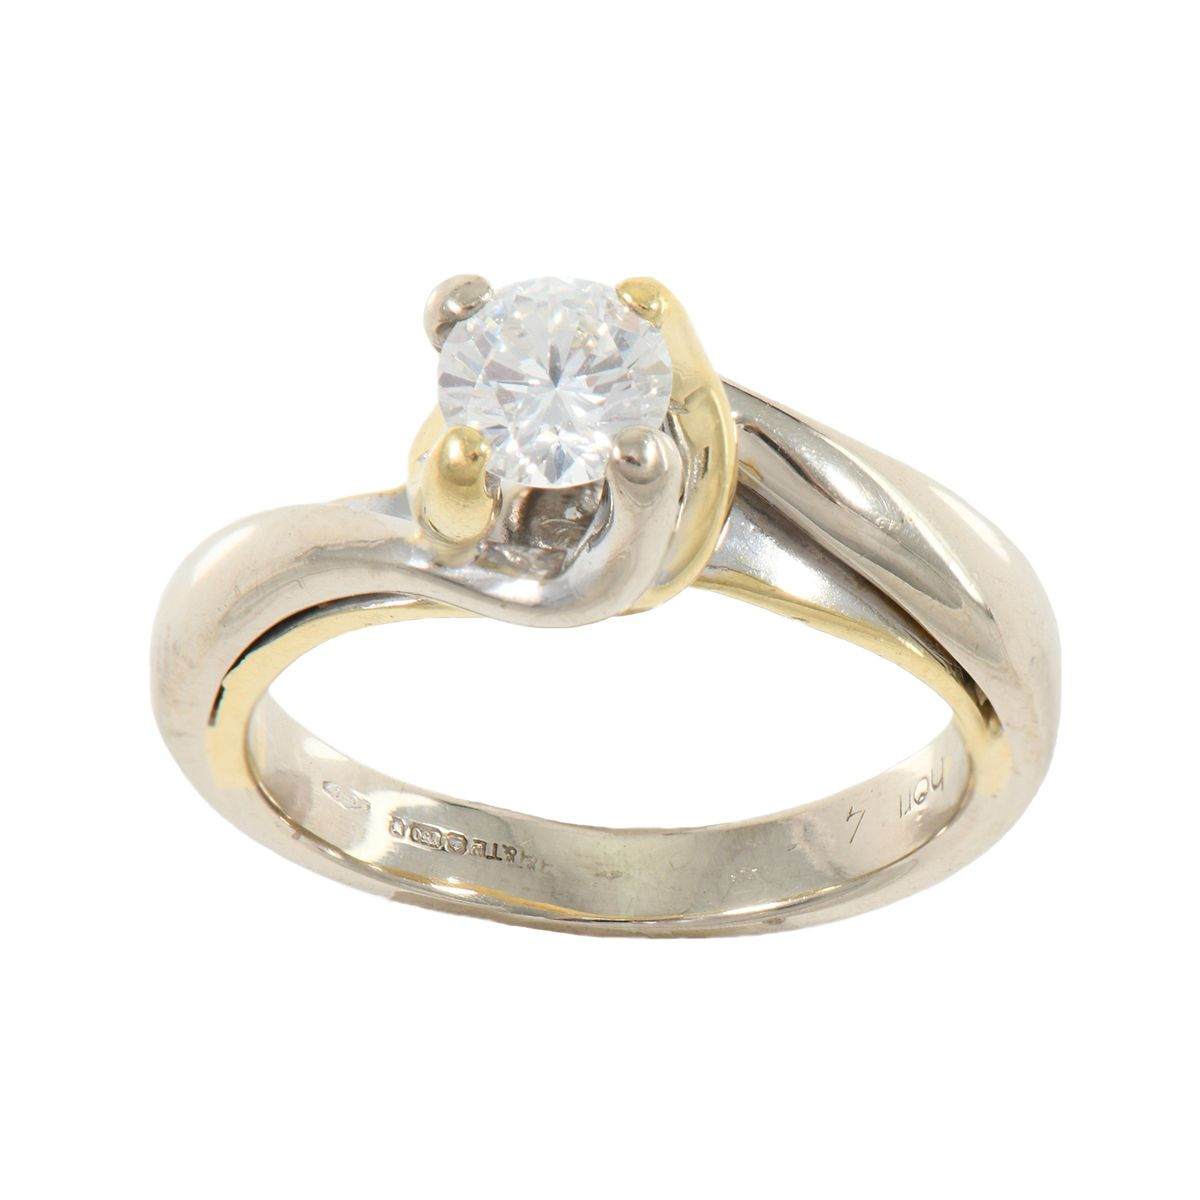 18ct Bicoloured Gold Ladies Round 0.50ct Diamond Solitaire Ring Size N